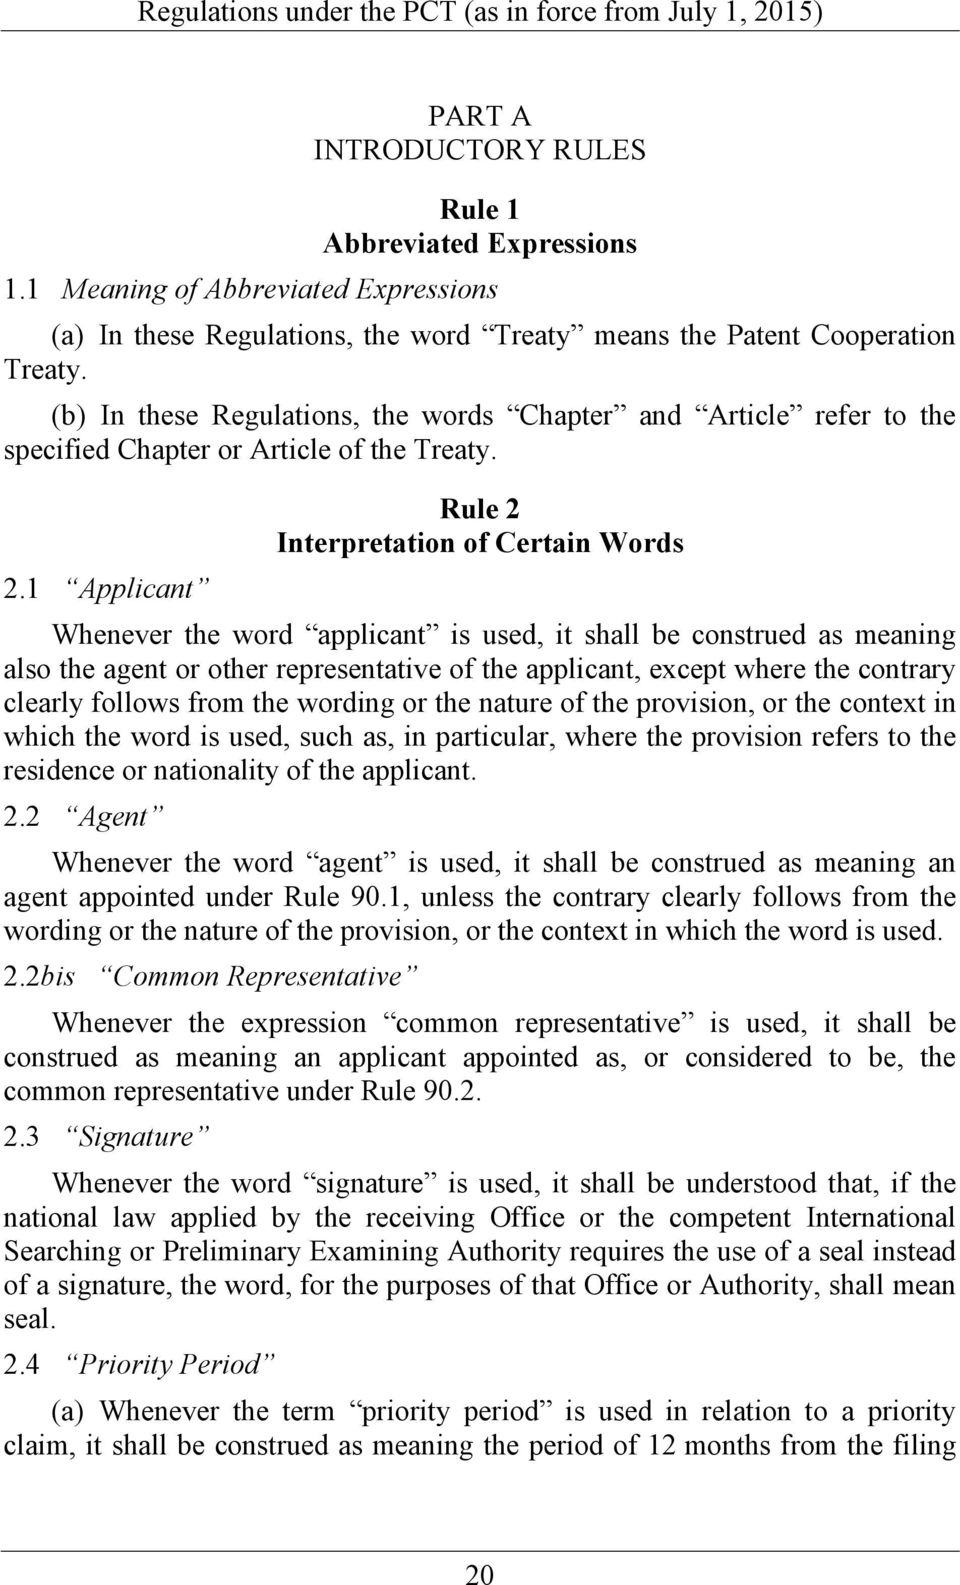 1 Applicant Whenever the word applicant is used, it shall be construed as meaning also the agent or other representative of the applicant, except where the contrary clearly follows from the wording